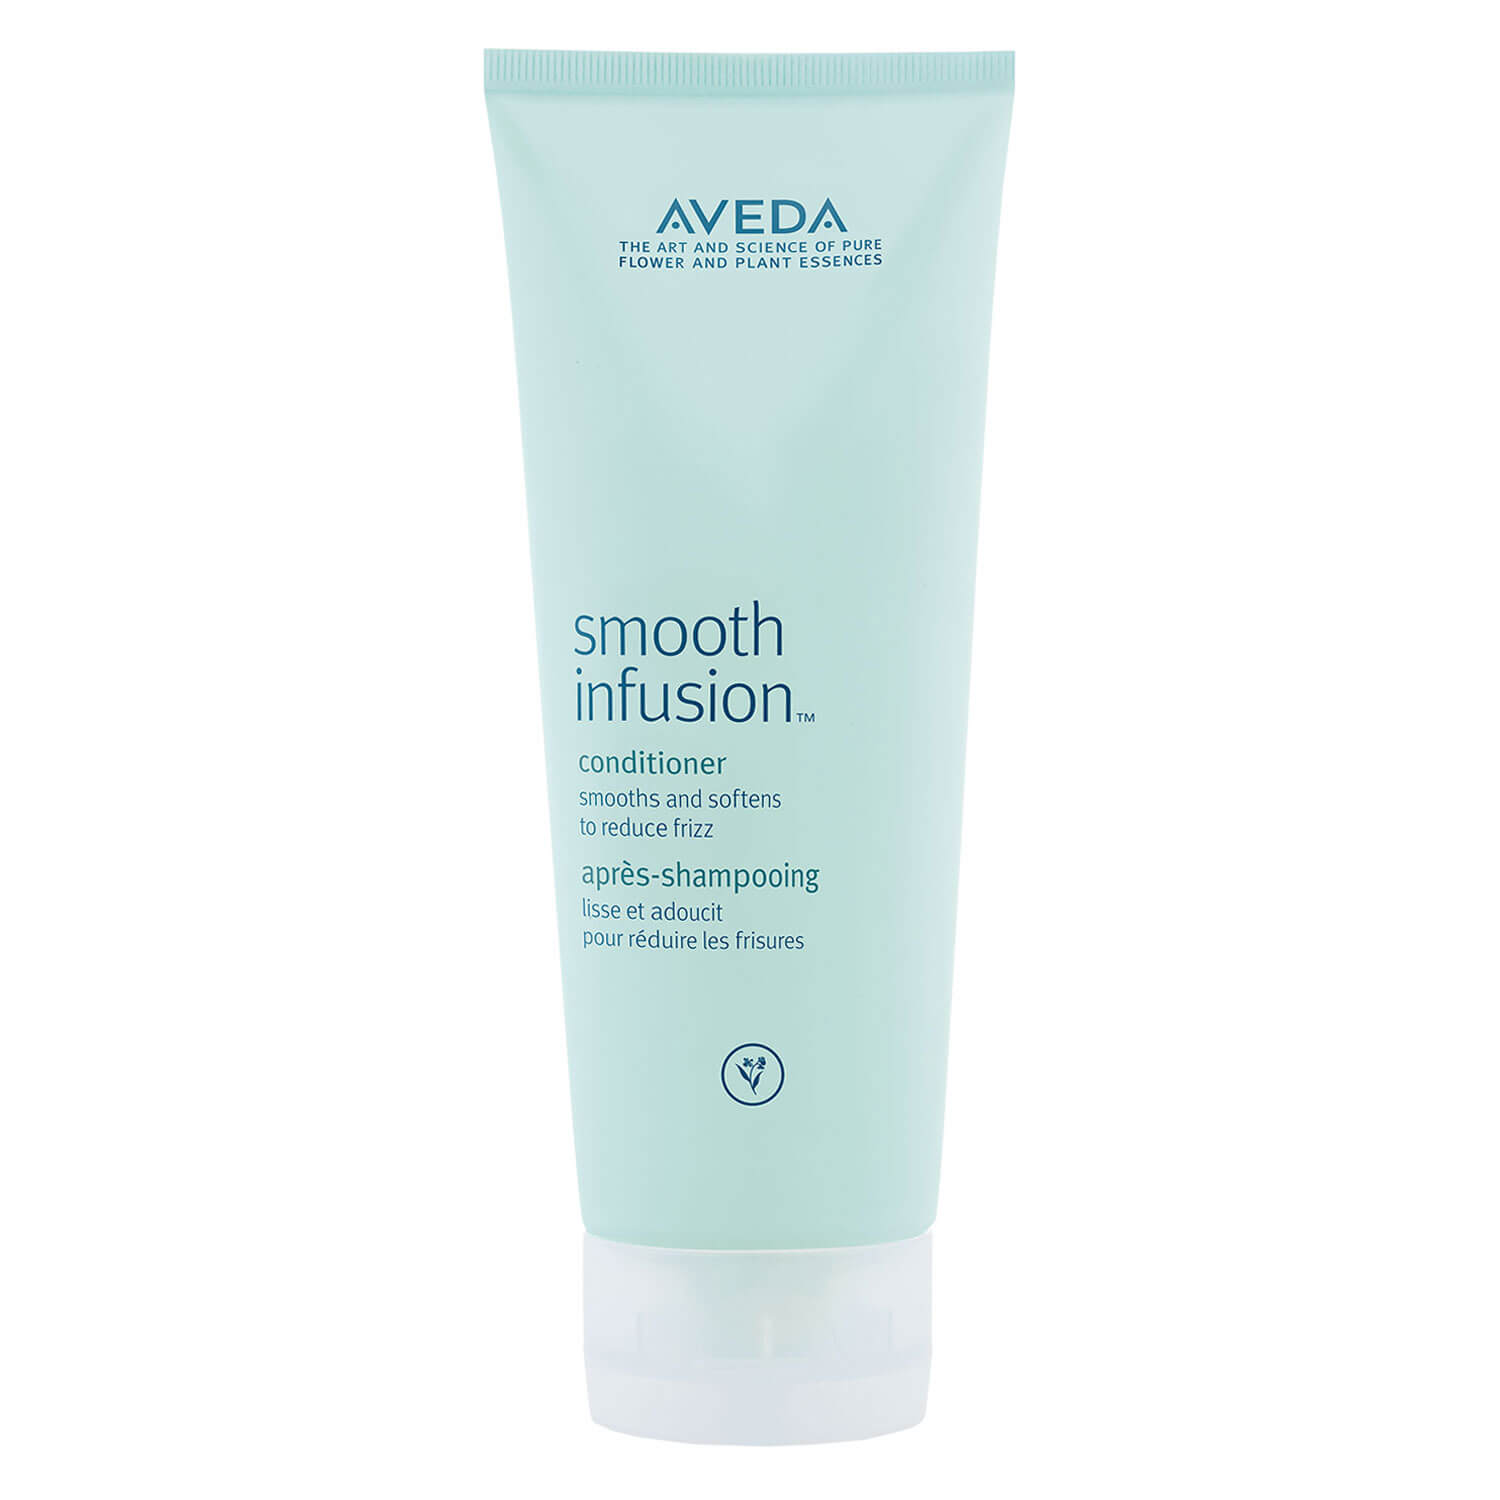 smooth infusion - conditioner